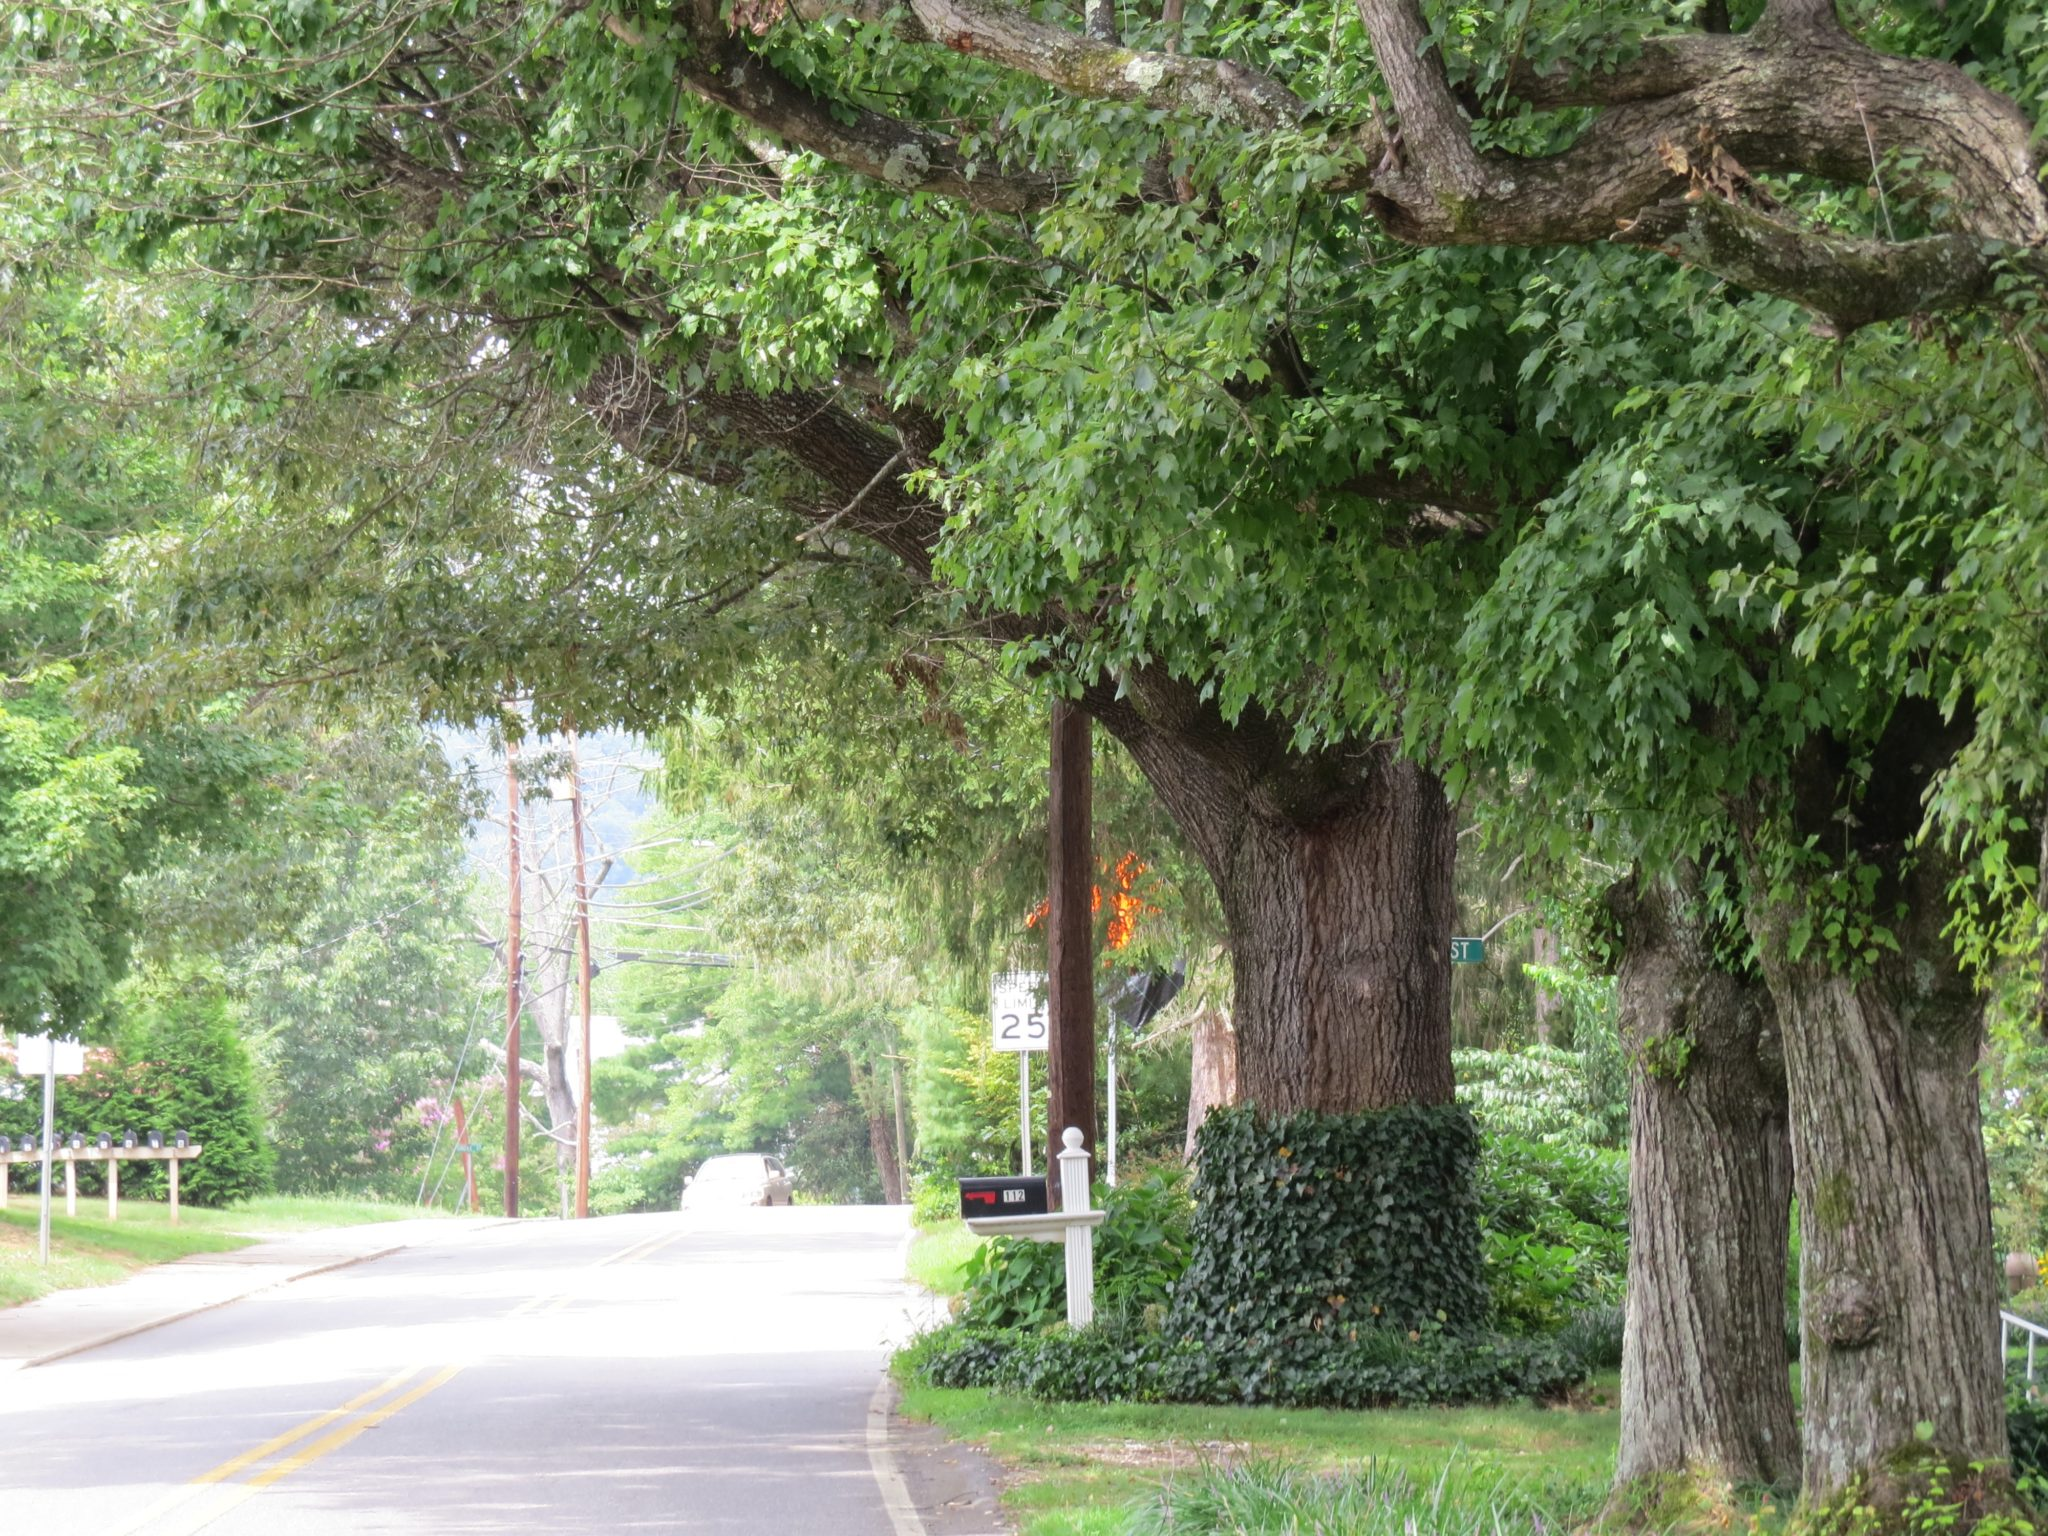 Town Of Weaverville NC Street View